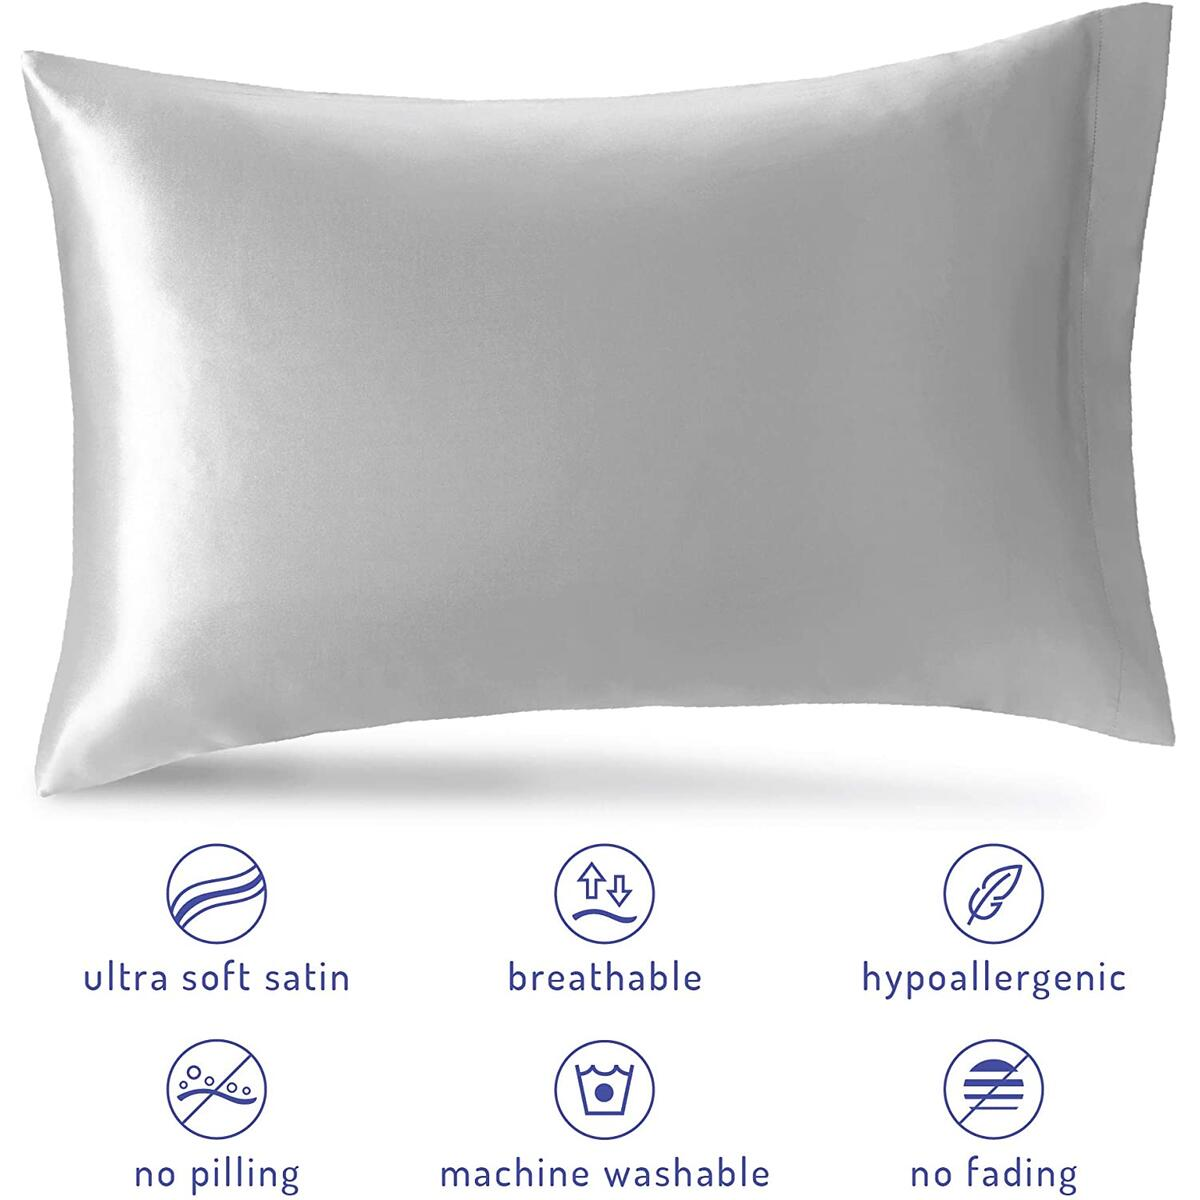 Silky Satin Pillow Cases Set of 2 | Satin Pillowcase for Hair And Skin | Silver Grey, Queen Pillow Cases, 20 x 30 Inch – Reduce Skin Irritation & Frizzy Hair | Retains Color in Easy Machine Wash & Dry